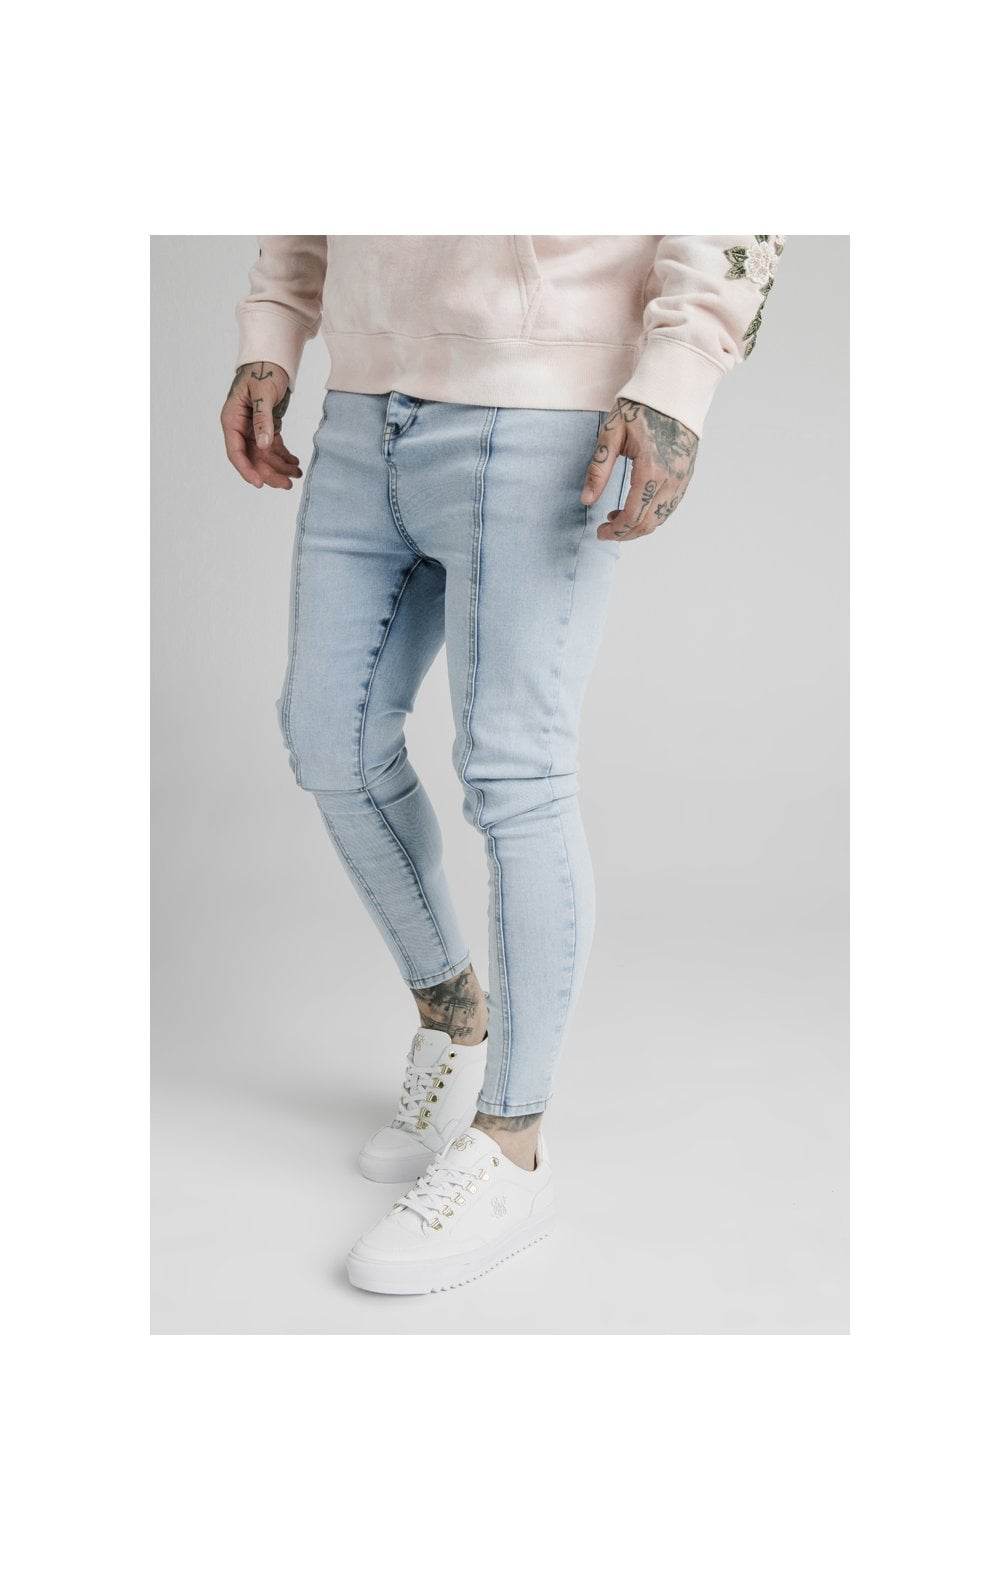 Load image into Gallery viewer, SikSilk Drop Crotch Pleated Applique Denims - White (1)